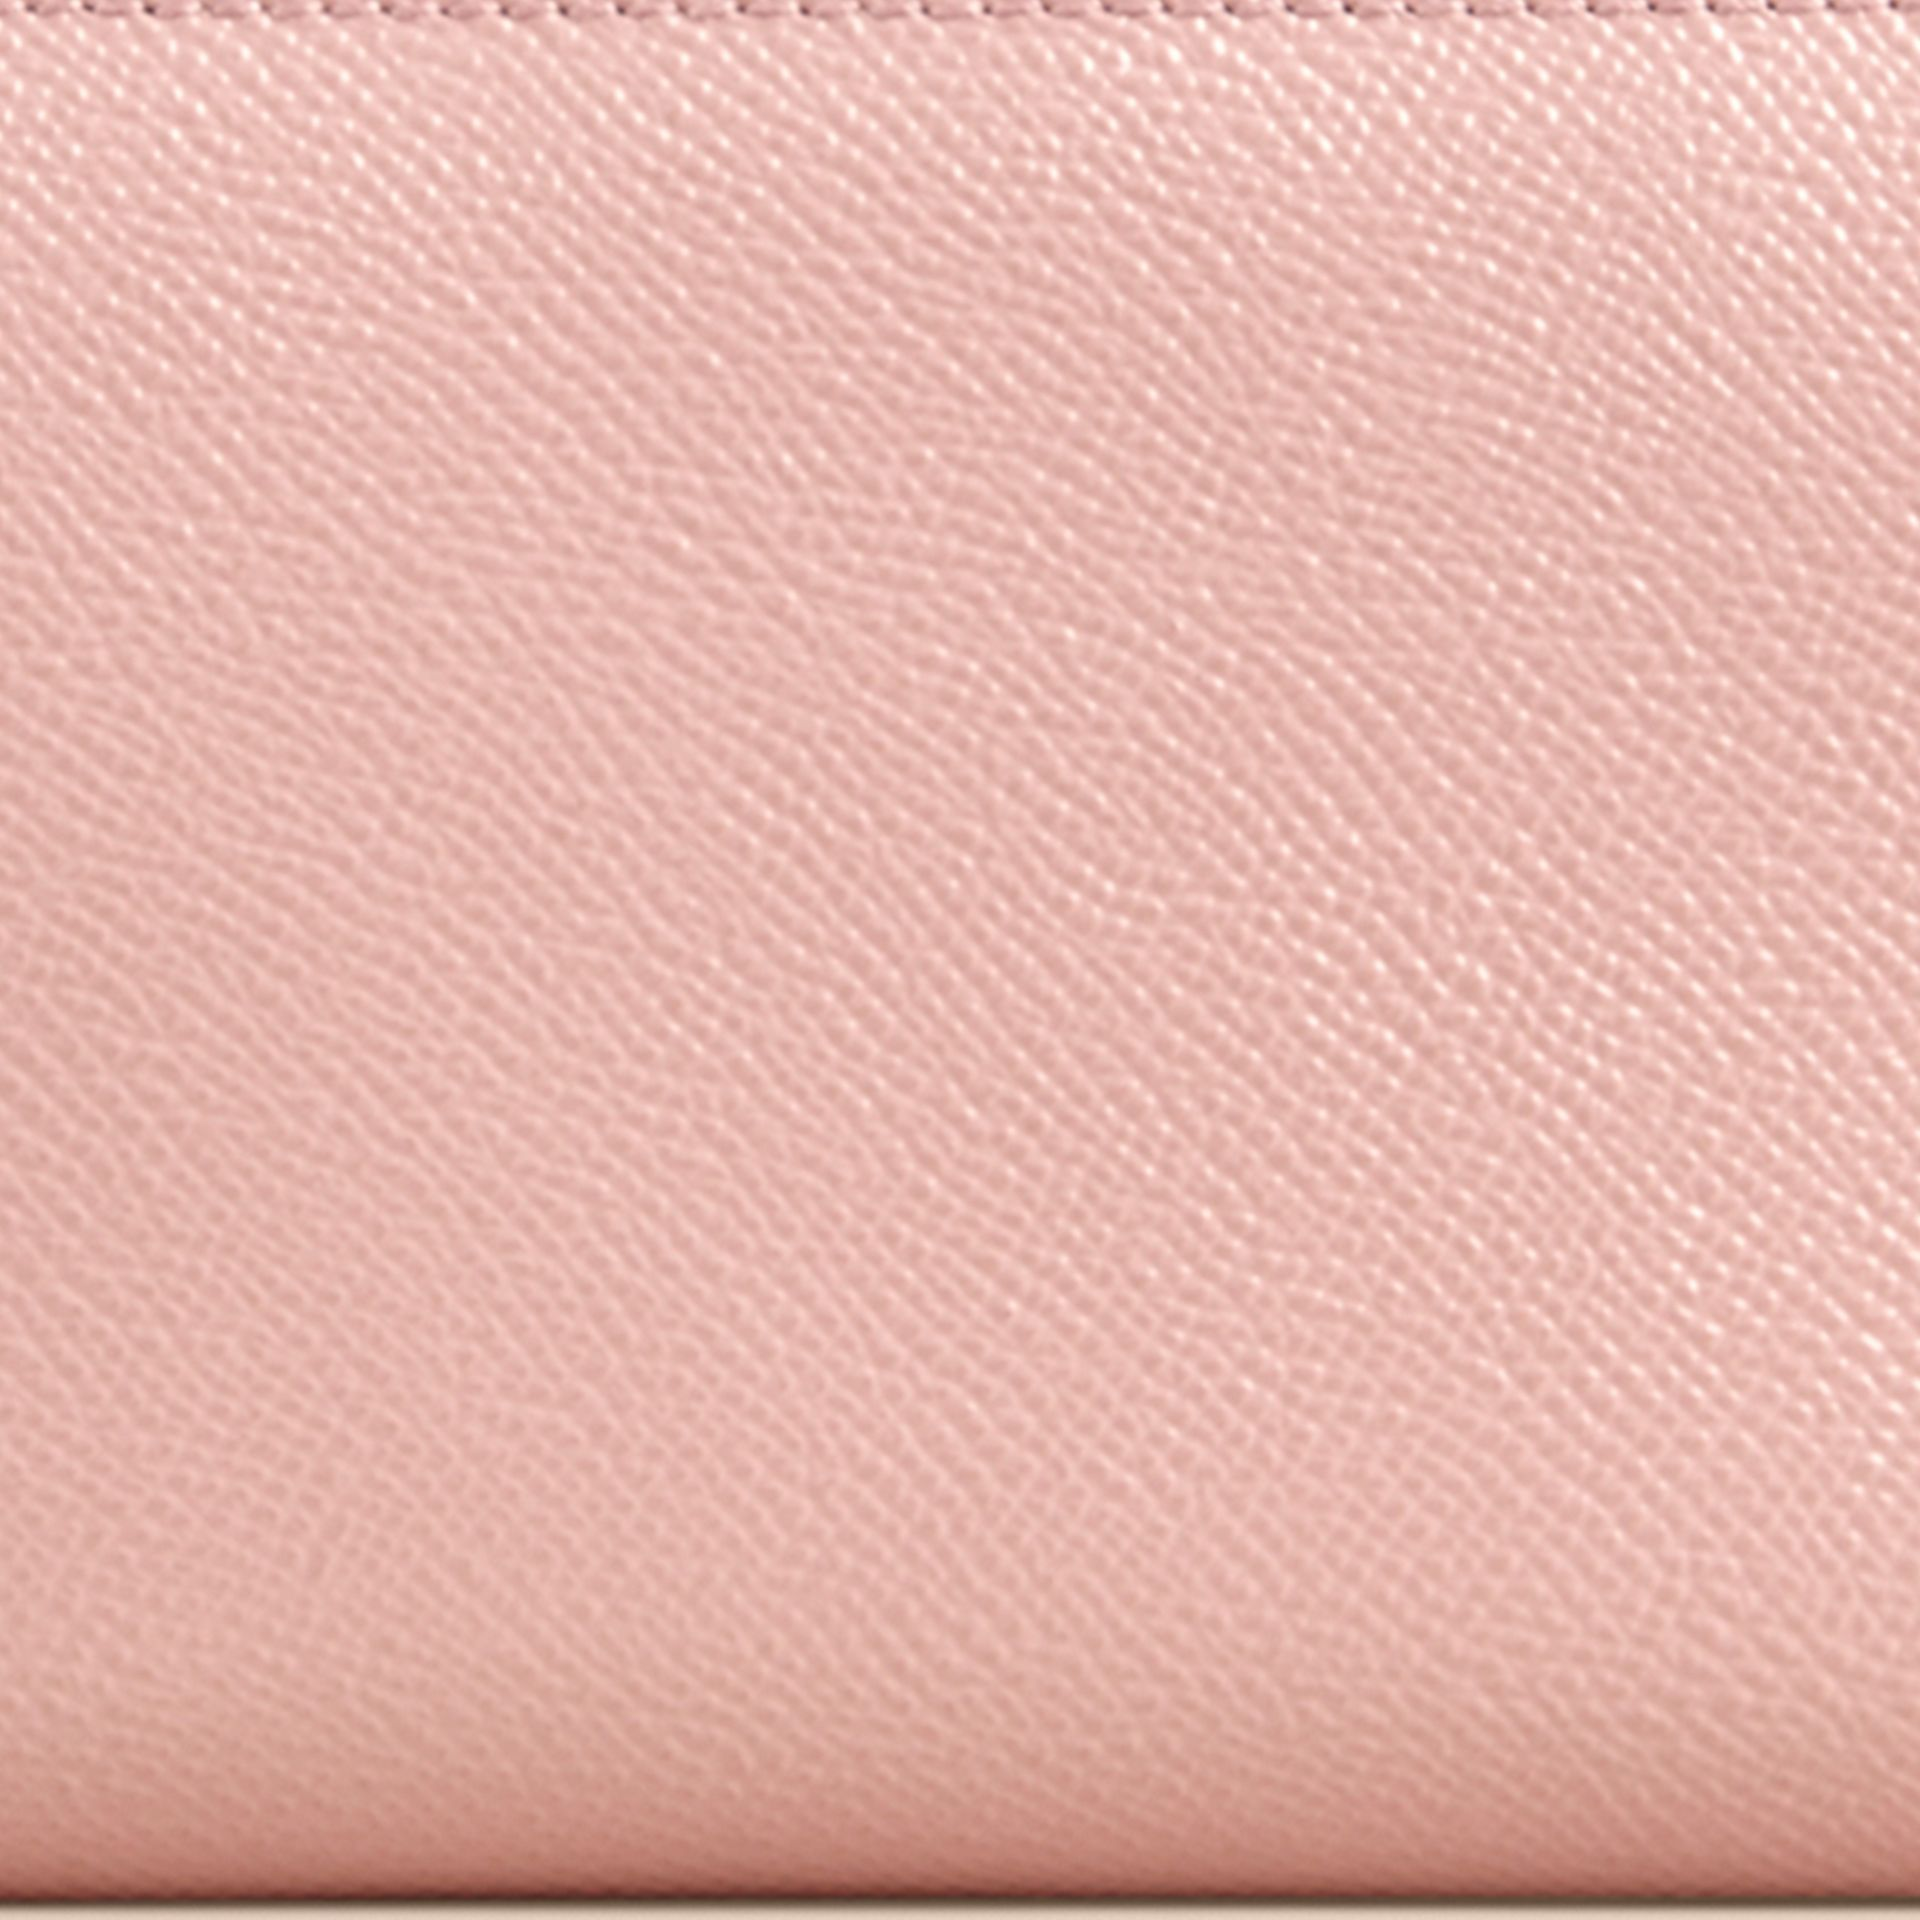 Ash rose Patent London Leather Ziparound Wallet Ash Rose - gallery image 2